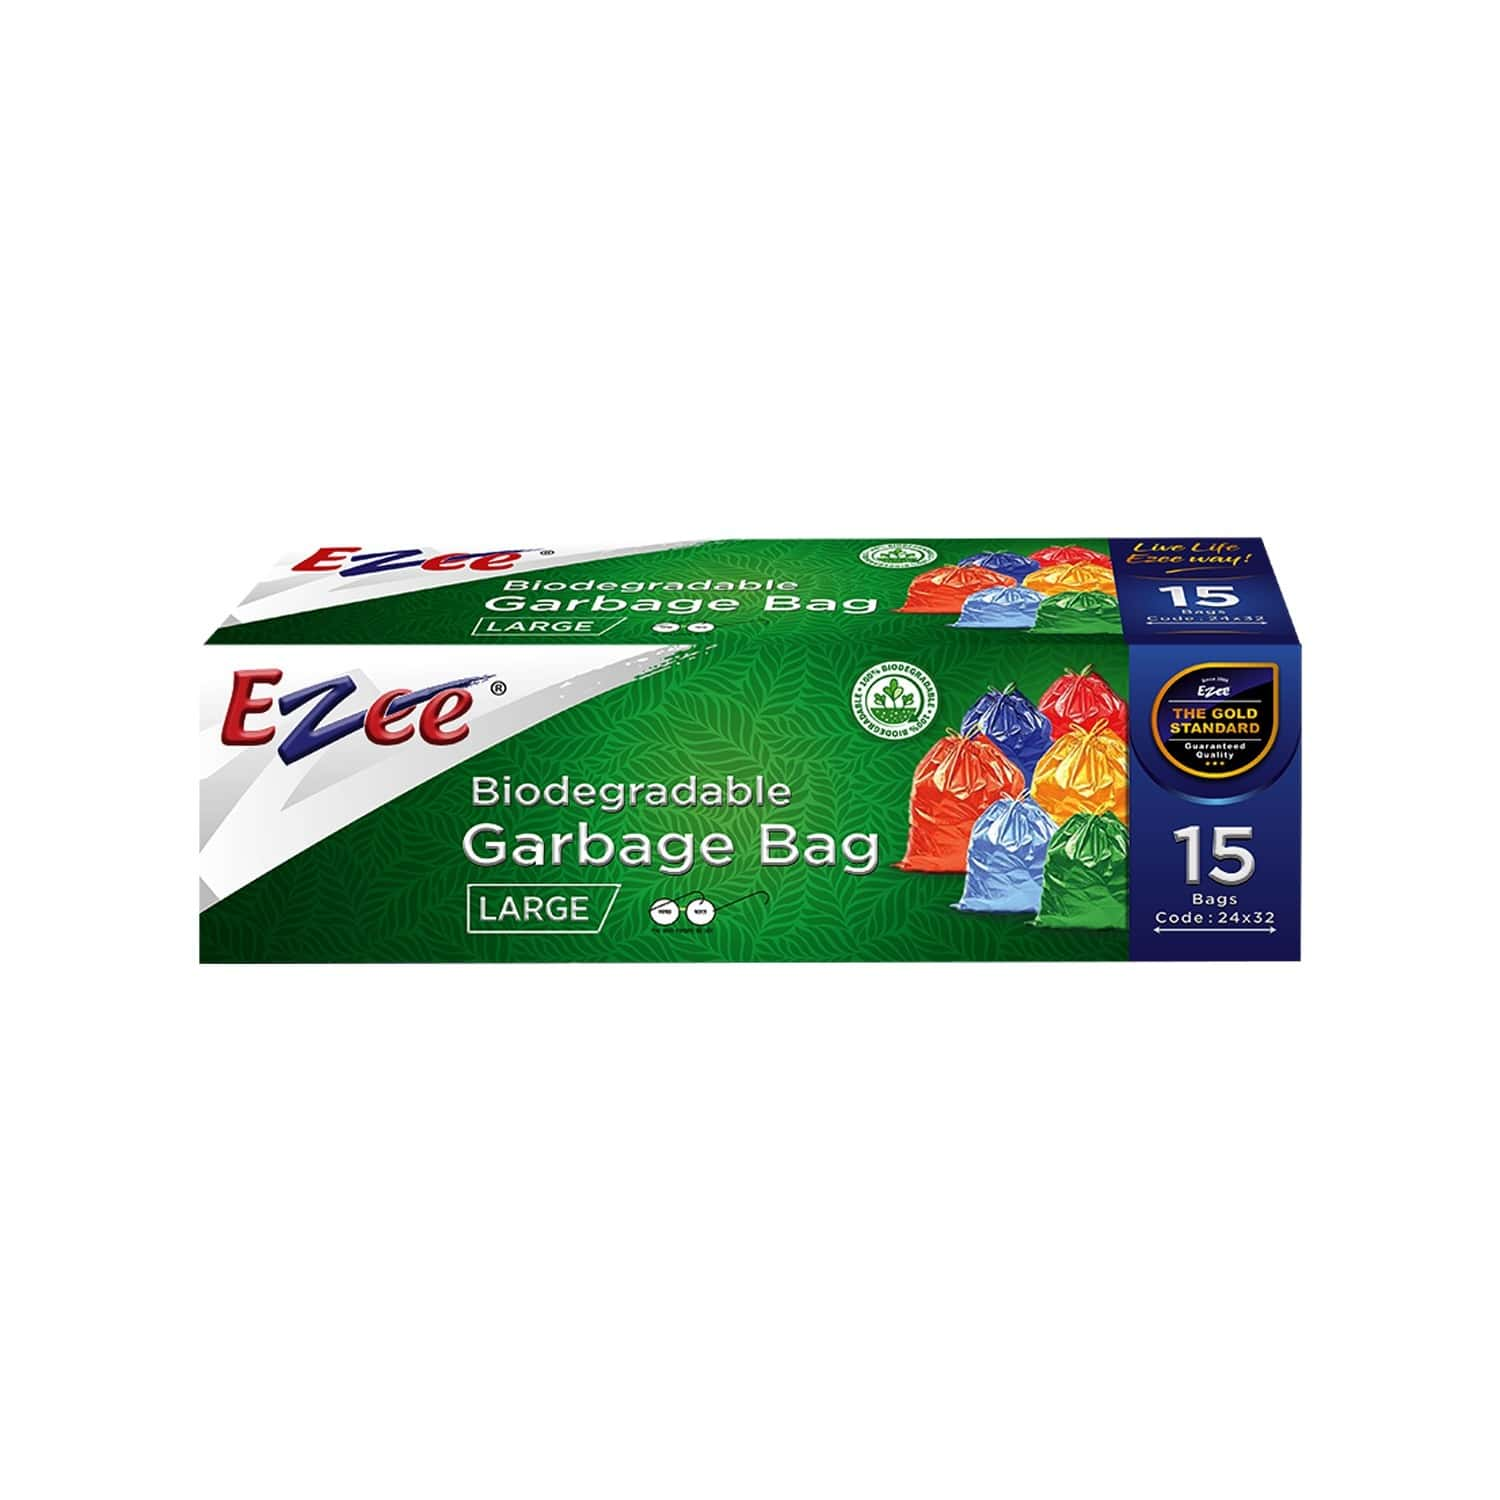 Ezee Bio-degradable Large  Garbage Bags (24 X 32 Inches) Packet Of 15